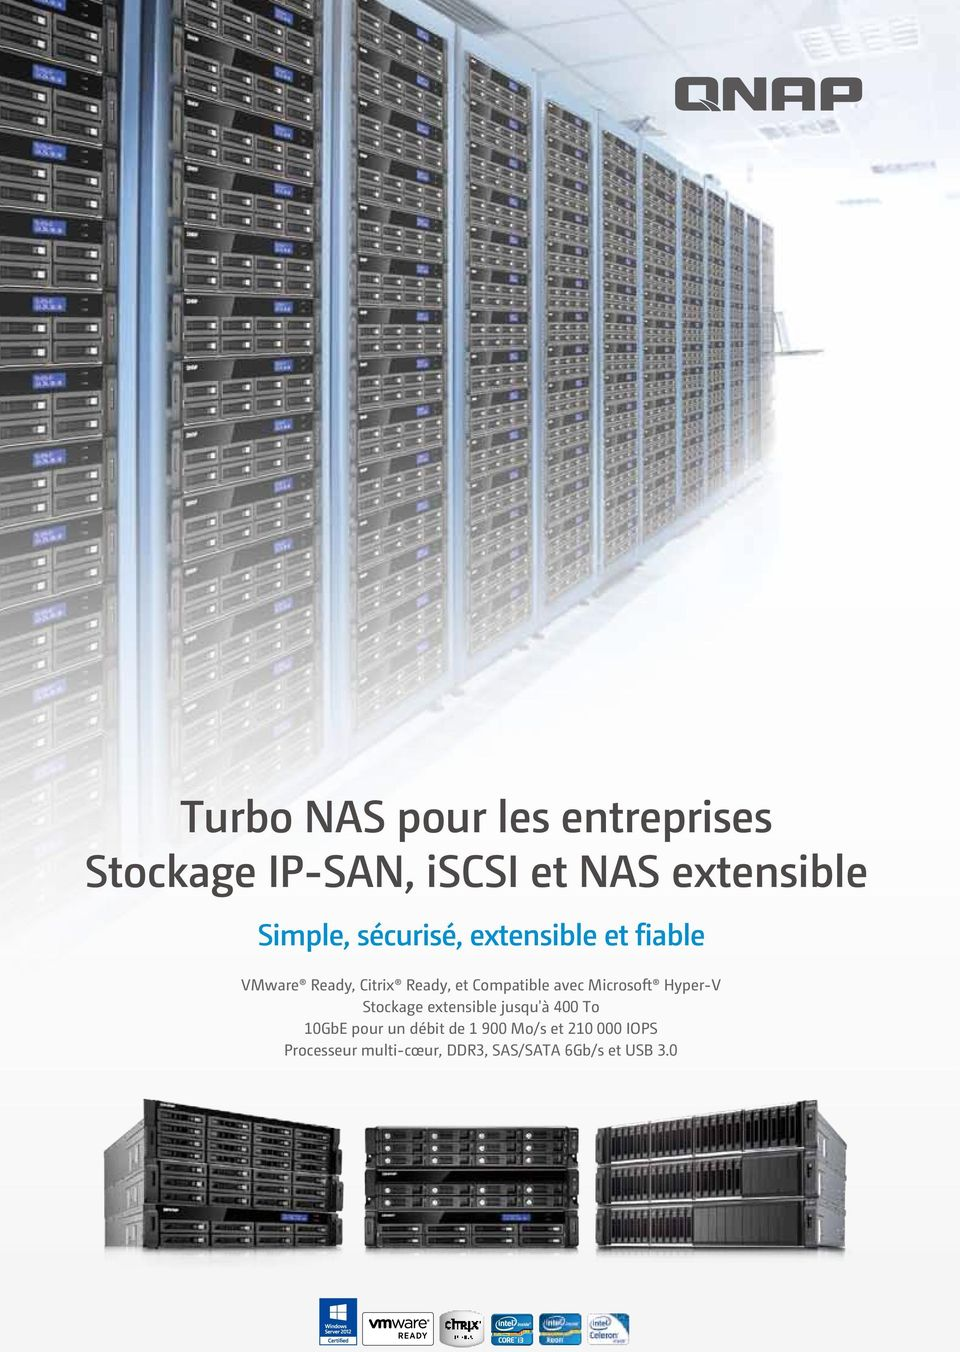 Compatible avec Microsoft Hyper-V Stockage extensible jusqu'à 400 To 10GbE